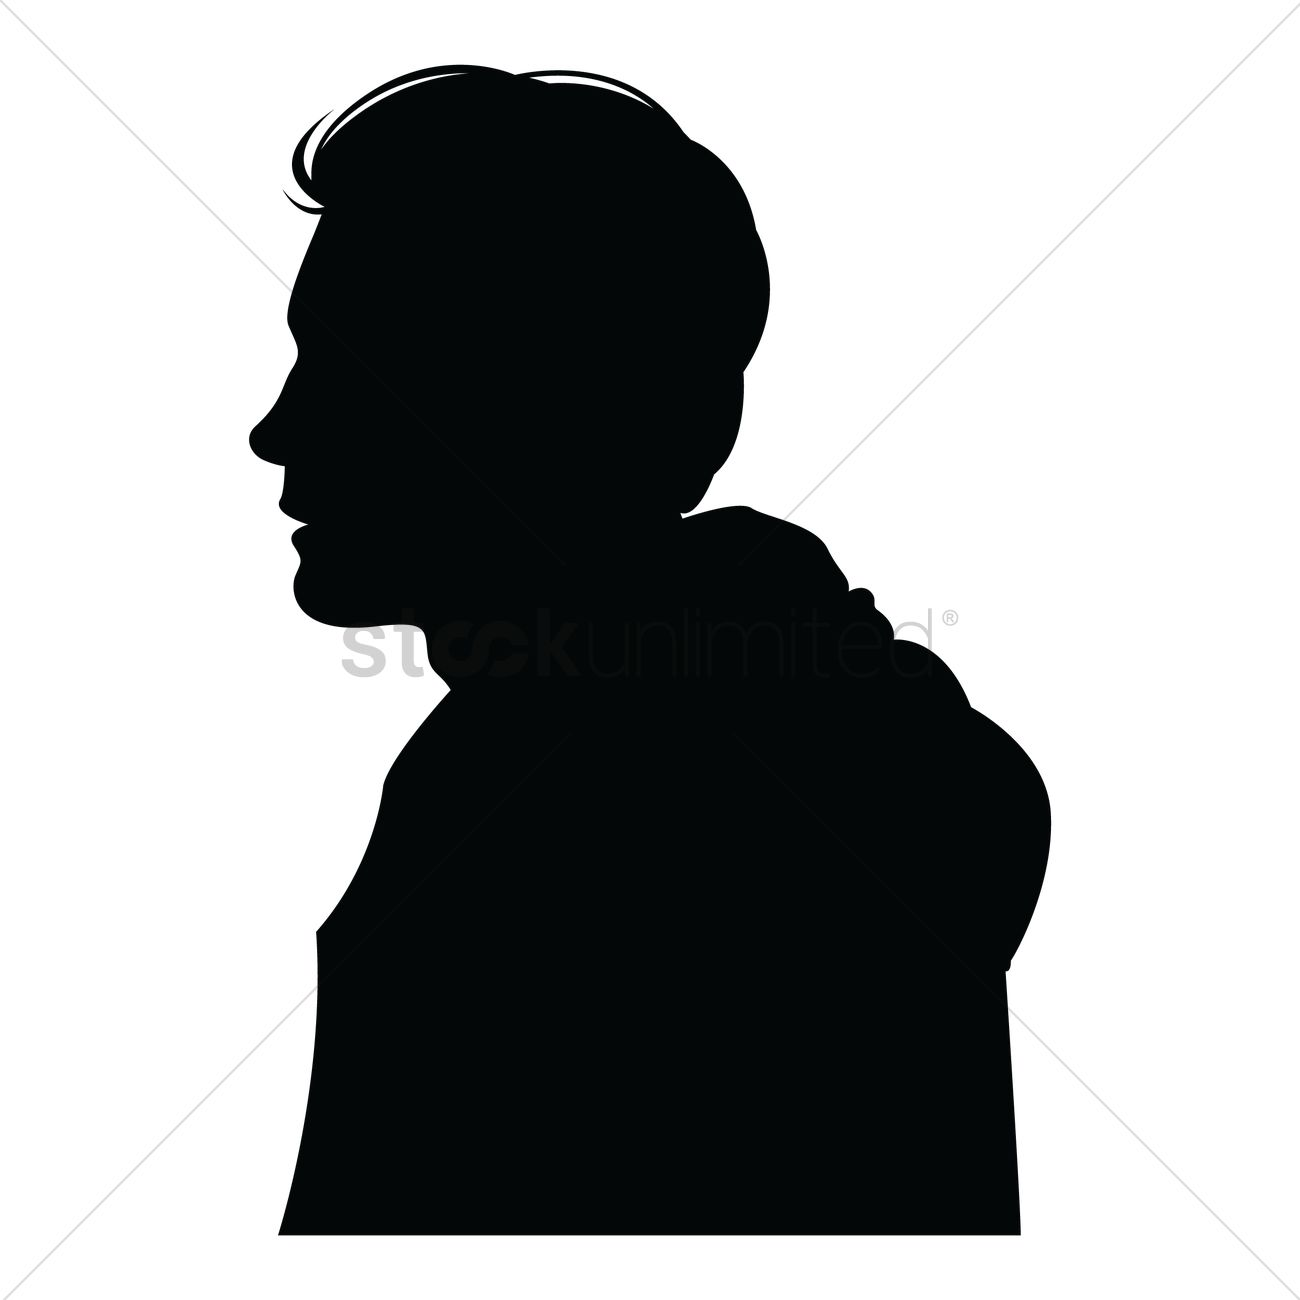 side view of a silhouette man vector graphic